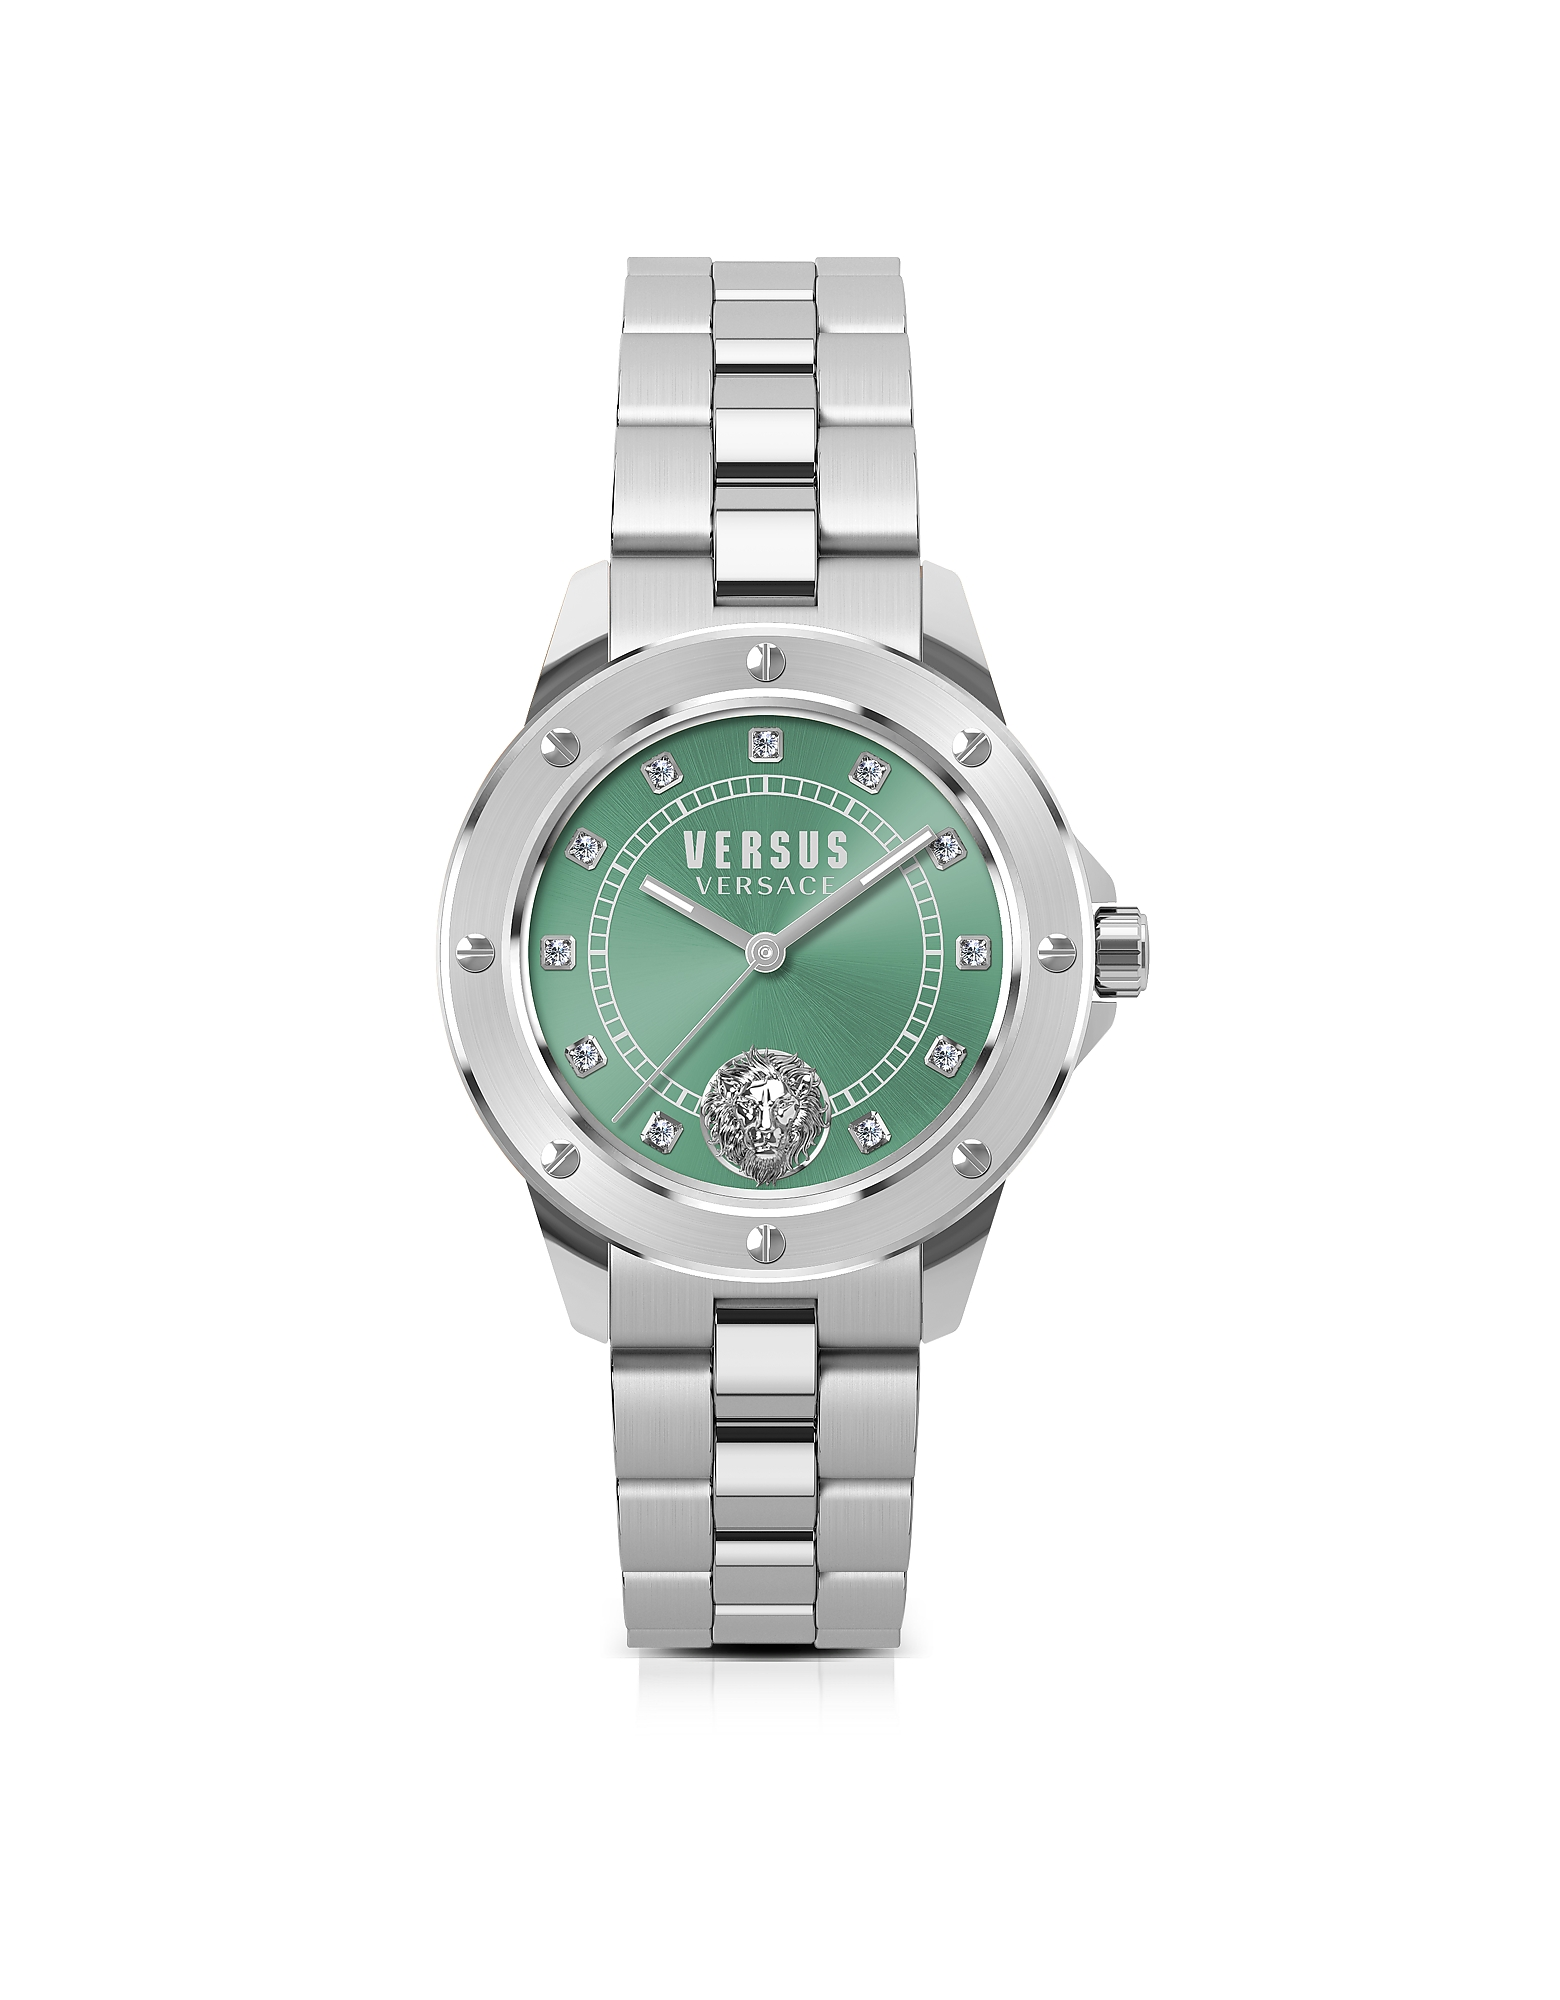 South Horizons Silver Stainless Steel Women's Bracelet Watch w/Green Dial and Crystals